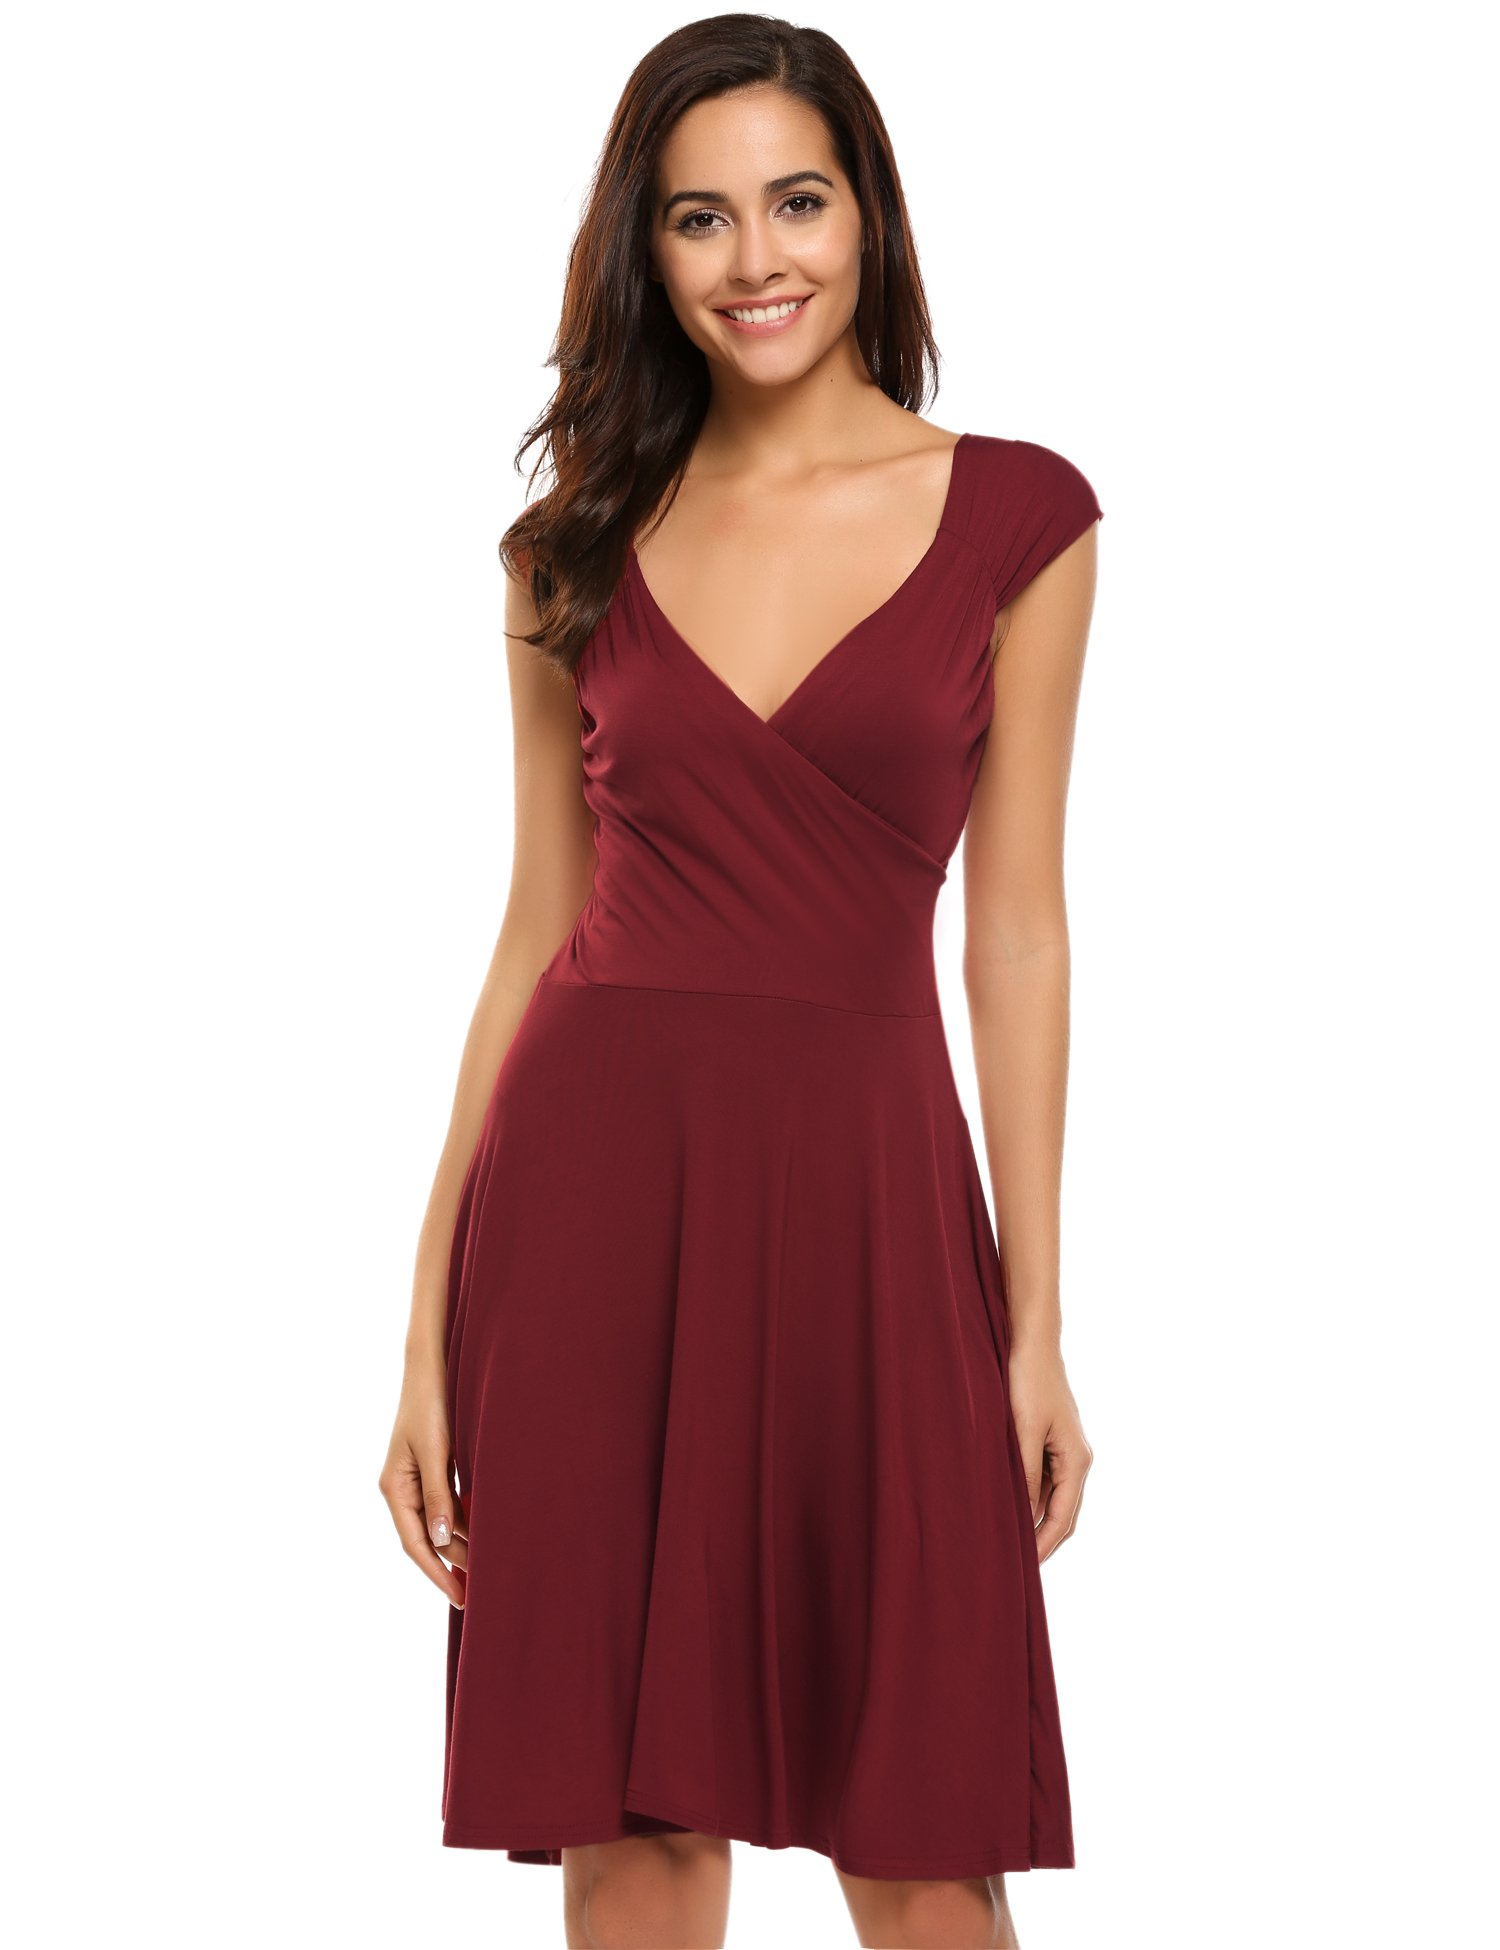 Hotouch Sleeveless Gorgeous Casual Loose Tunic Dress (Wine Red S)